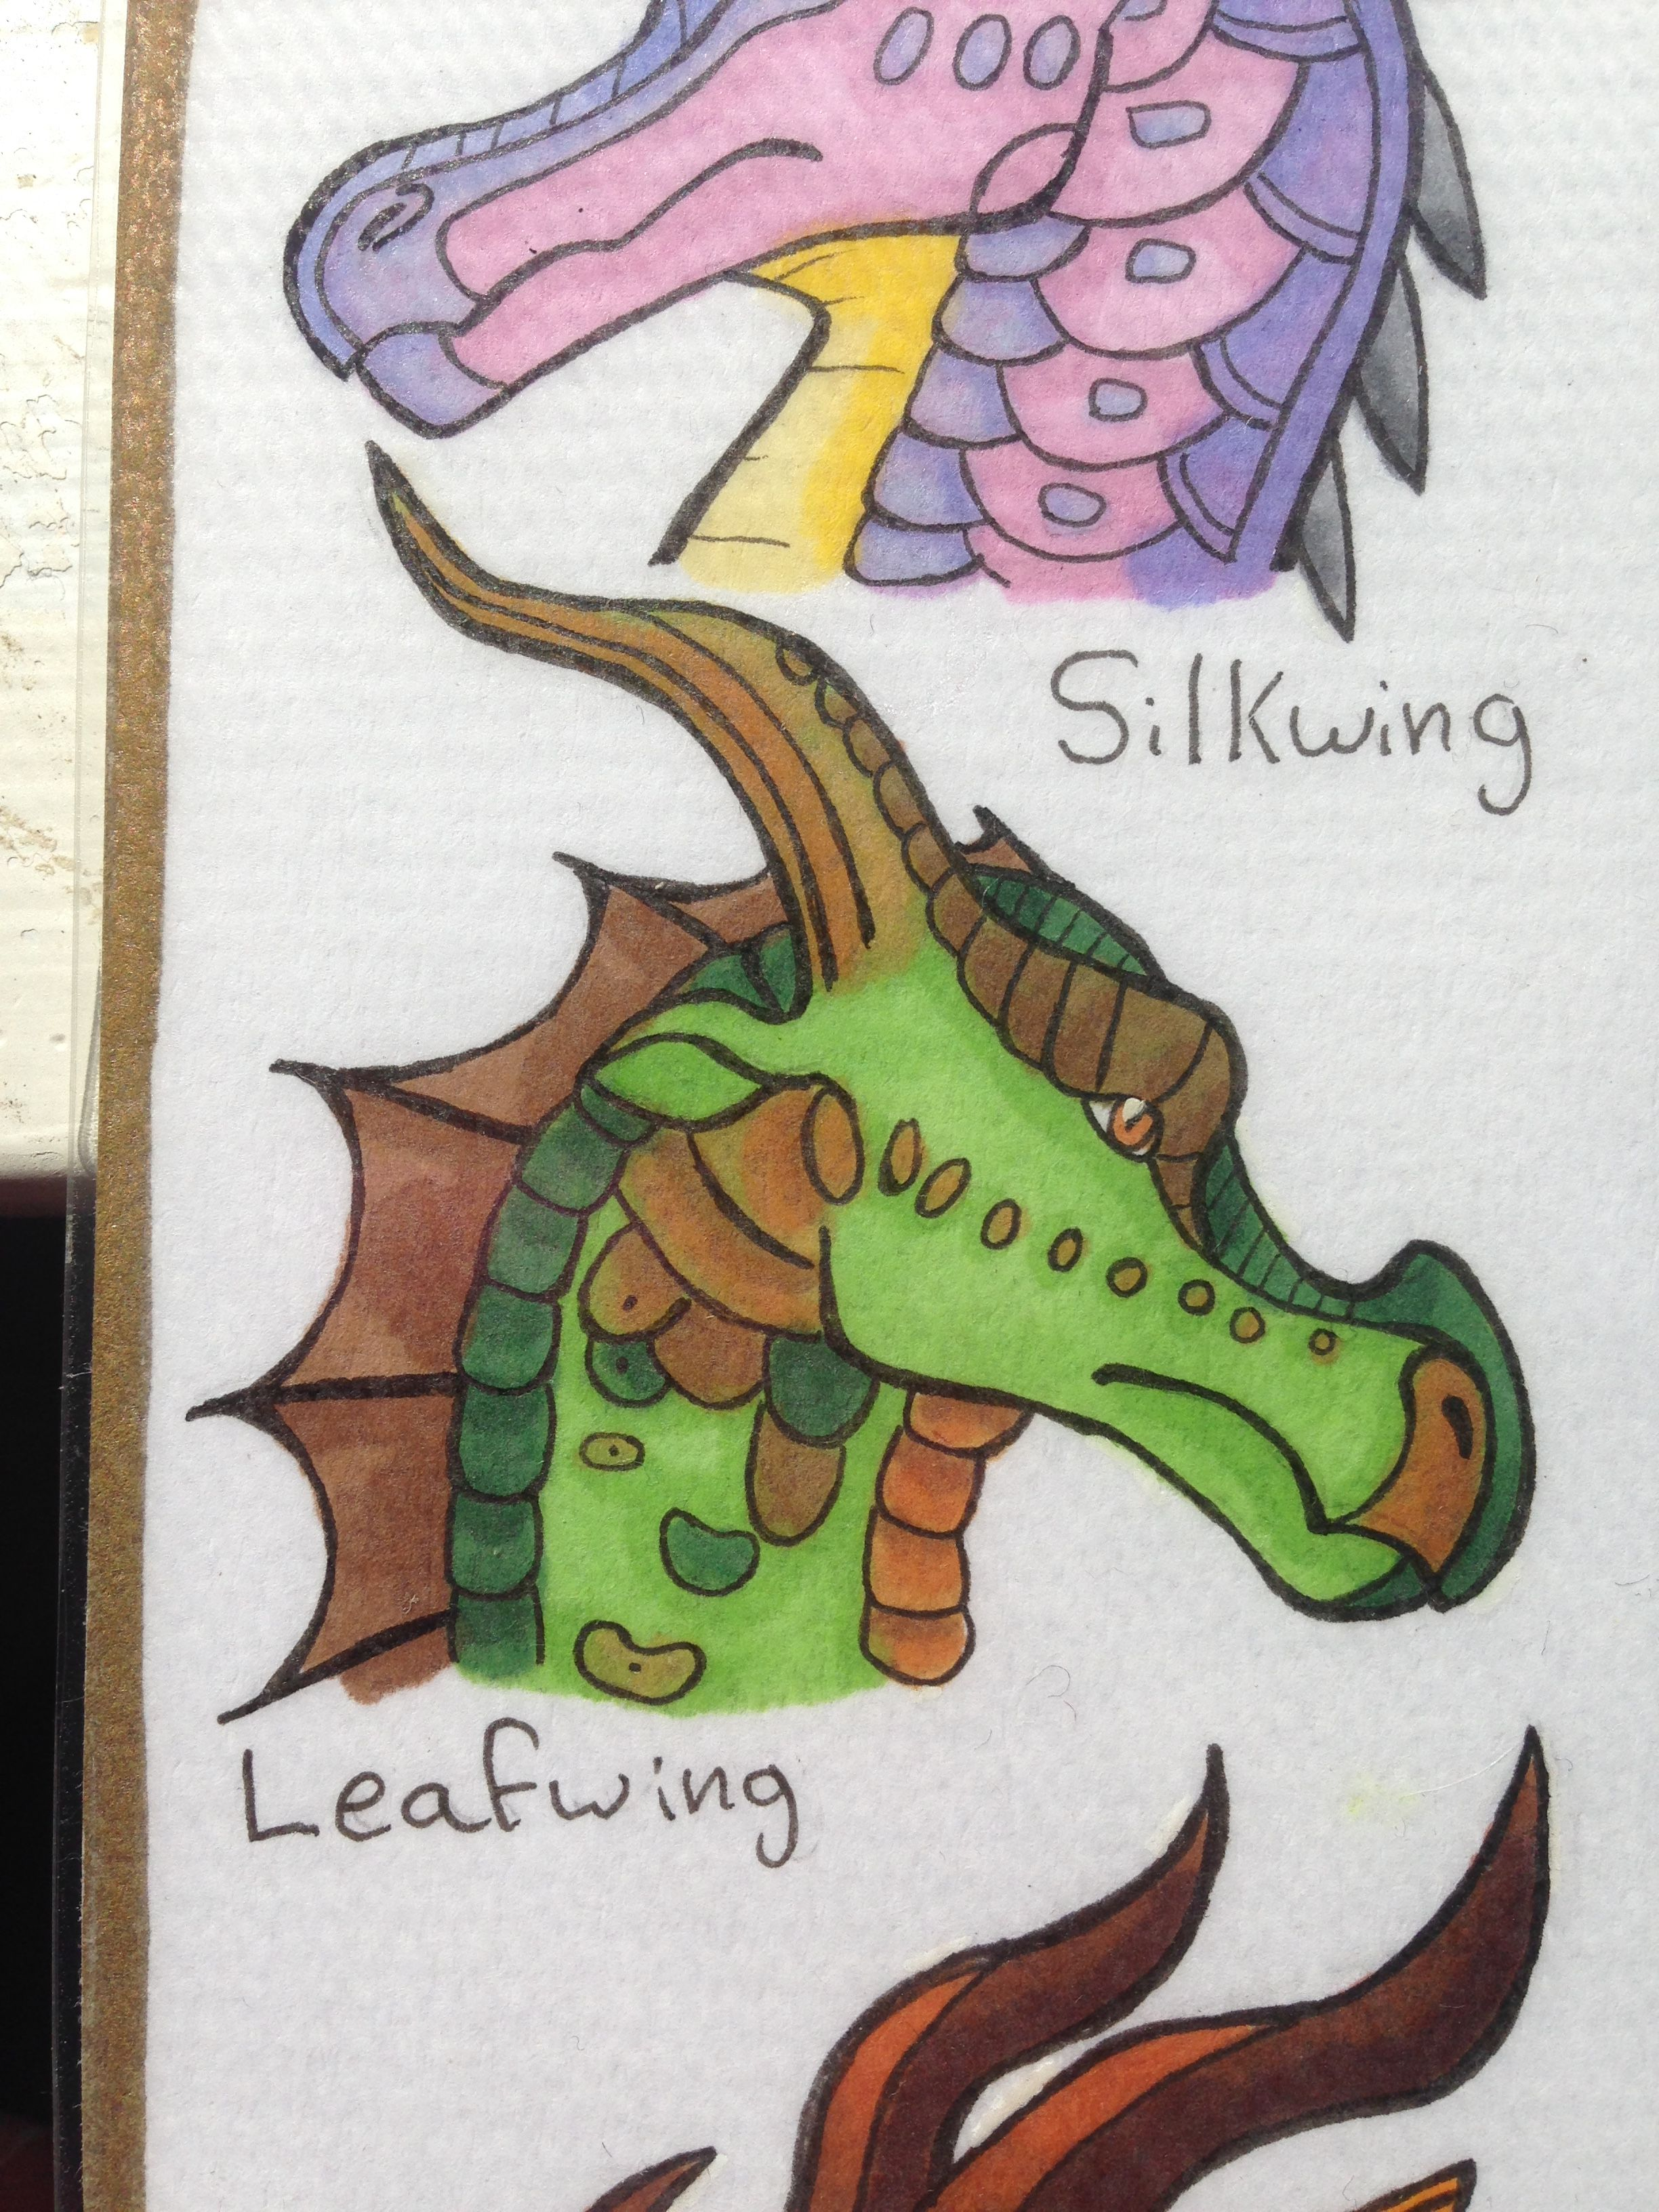 A Leafwing Too Huh Wings Of Fire Dragons Wings Of Fire Fire Drawing Where has this been all my life?! wings of fire dragons wings of fire